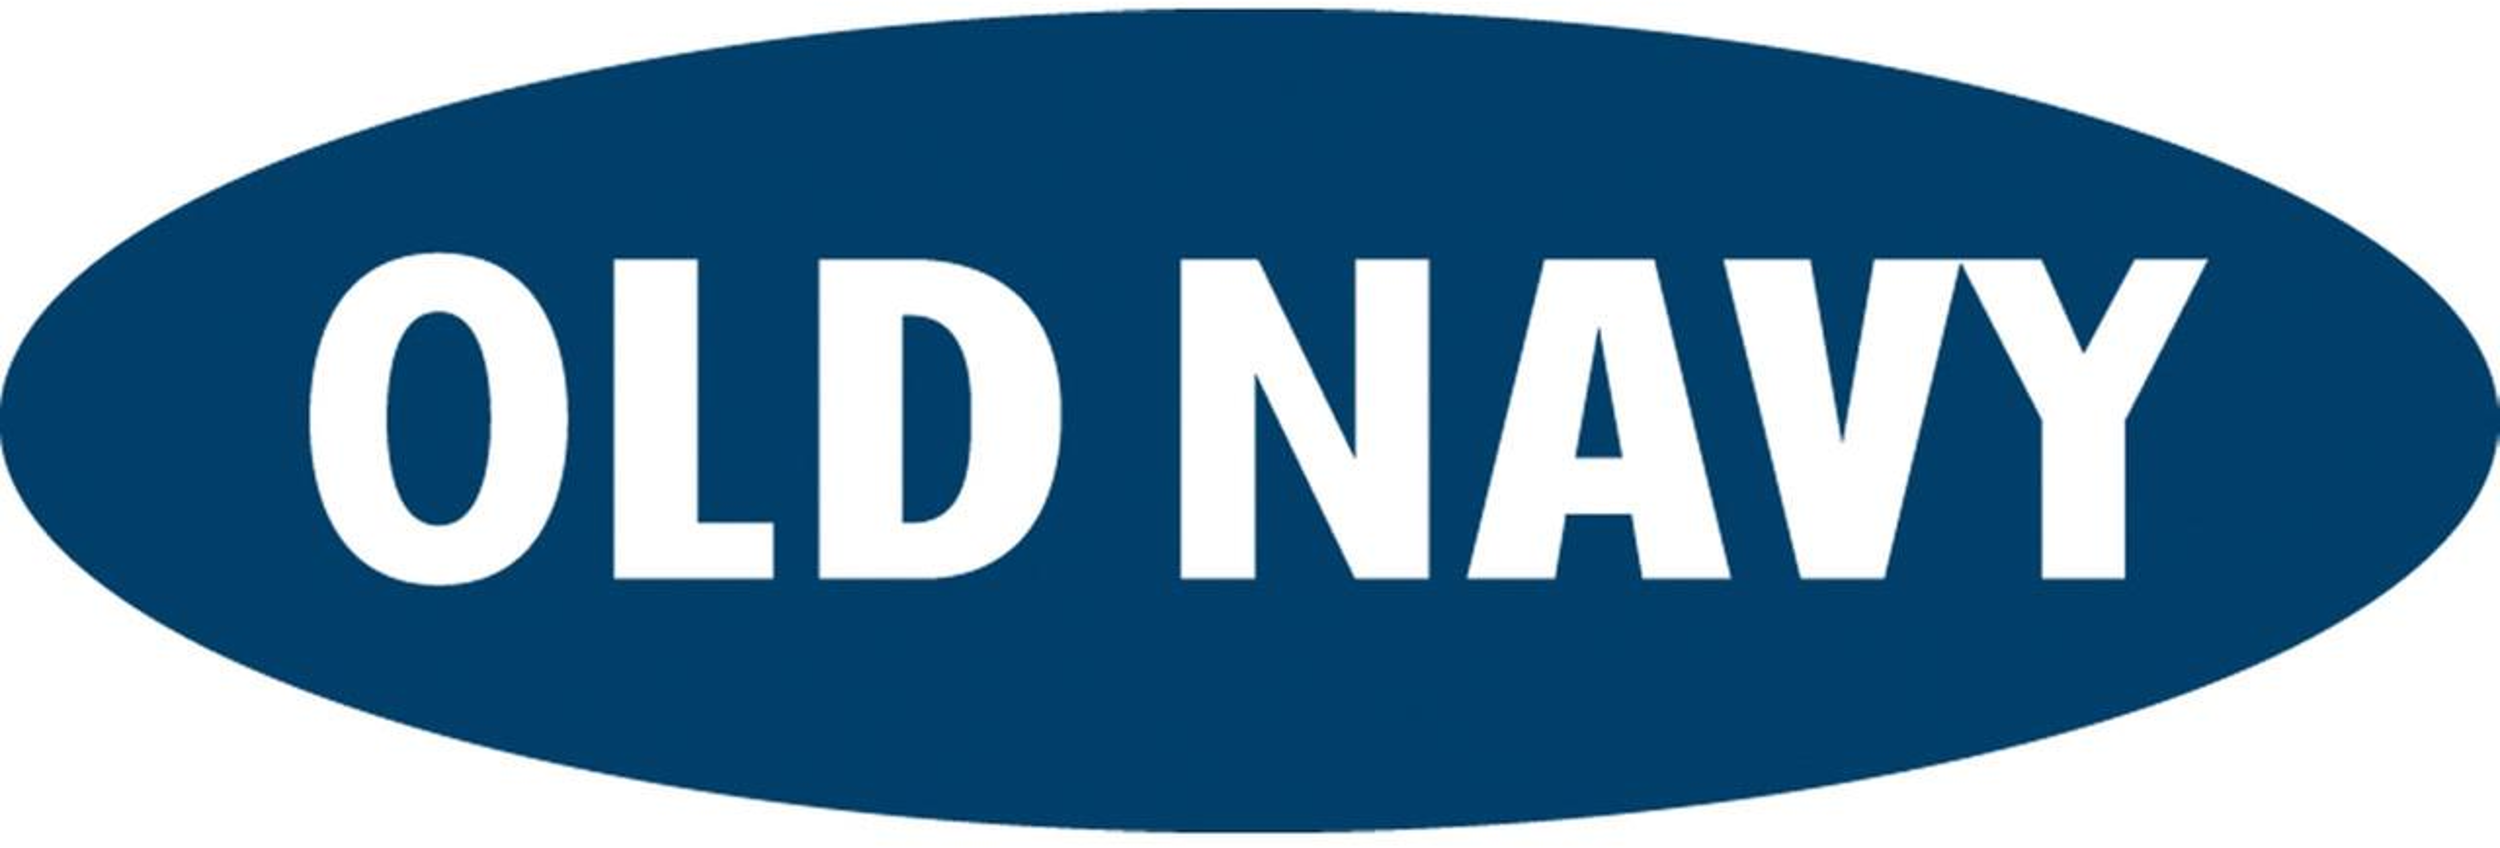 Old Navy Promotions & Discounts